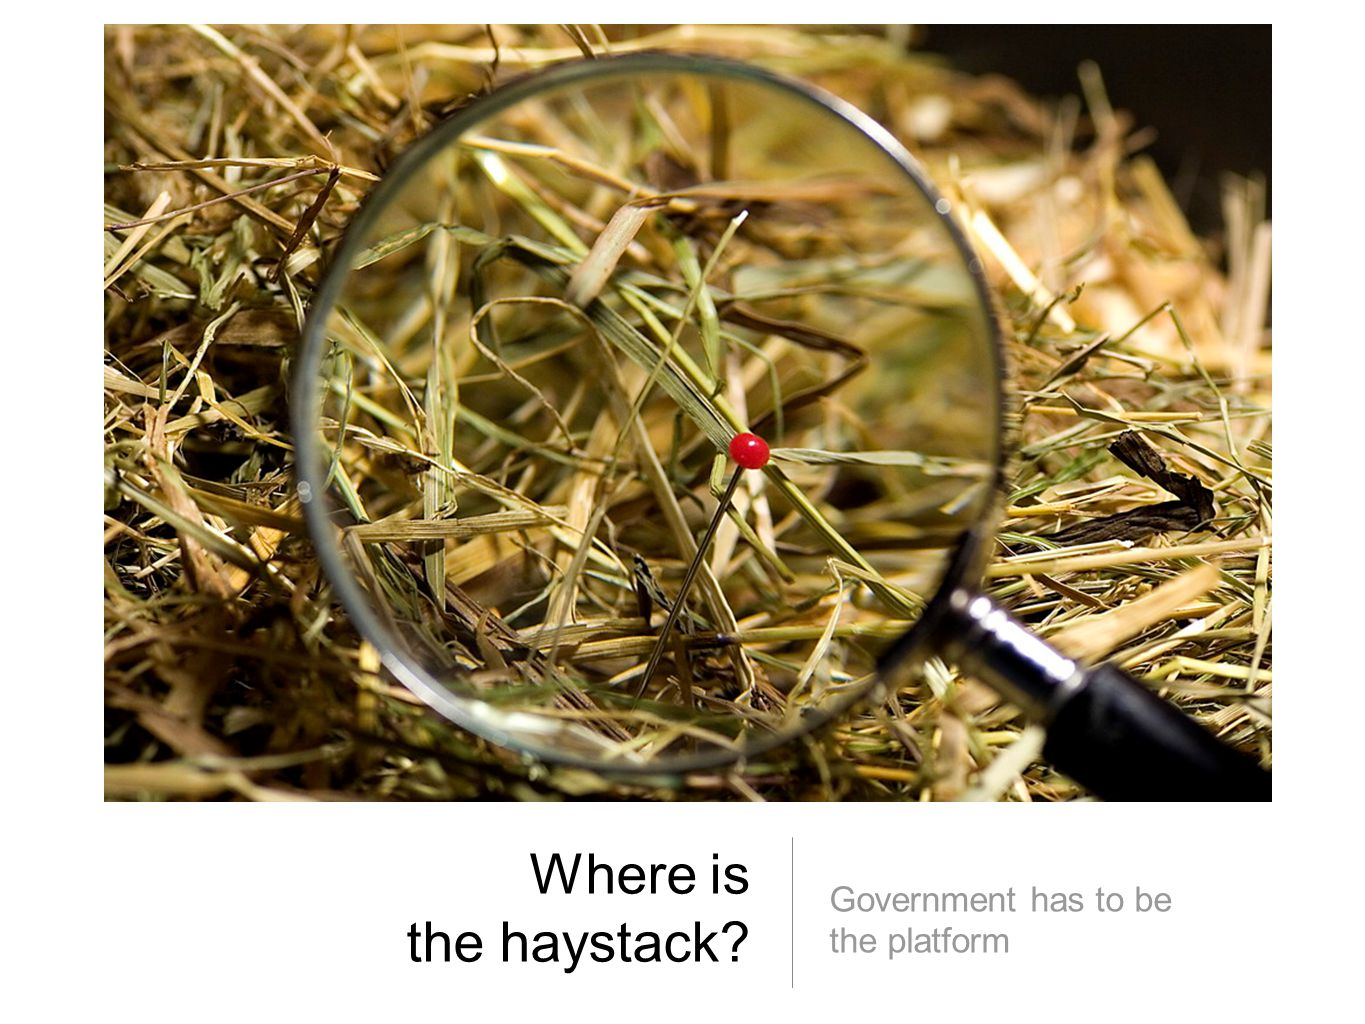 Where is the haystack? Government has to be the platform